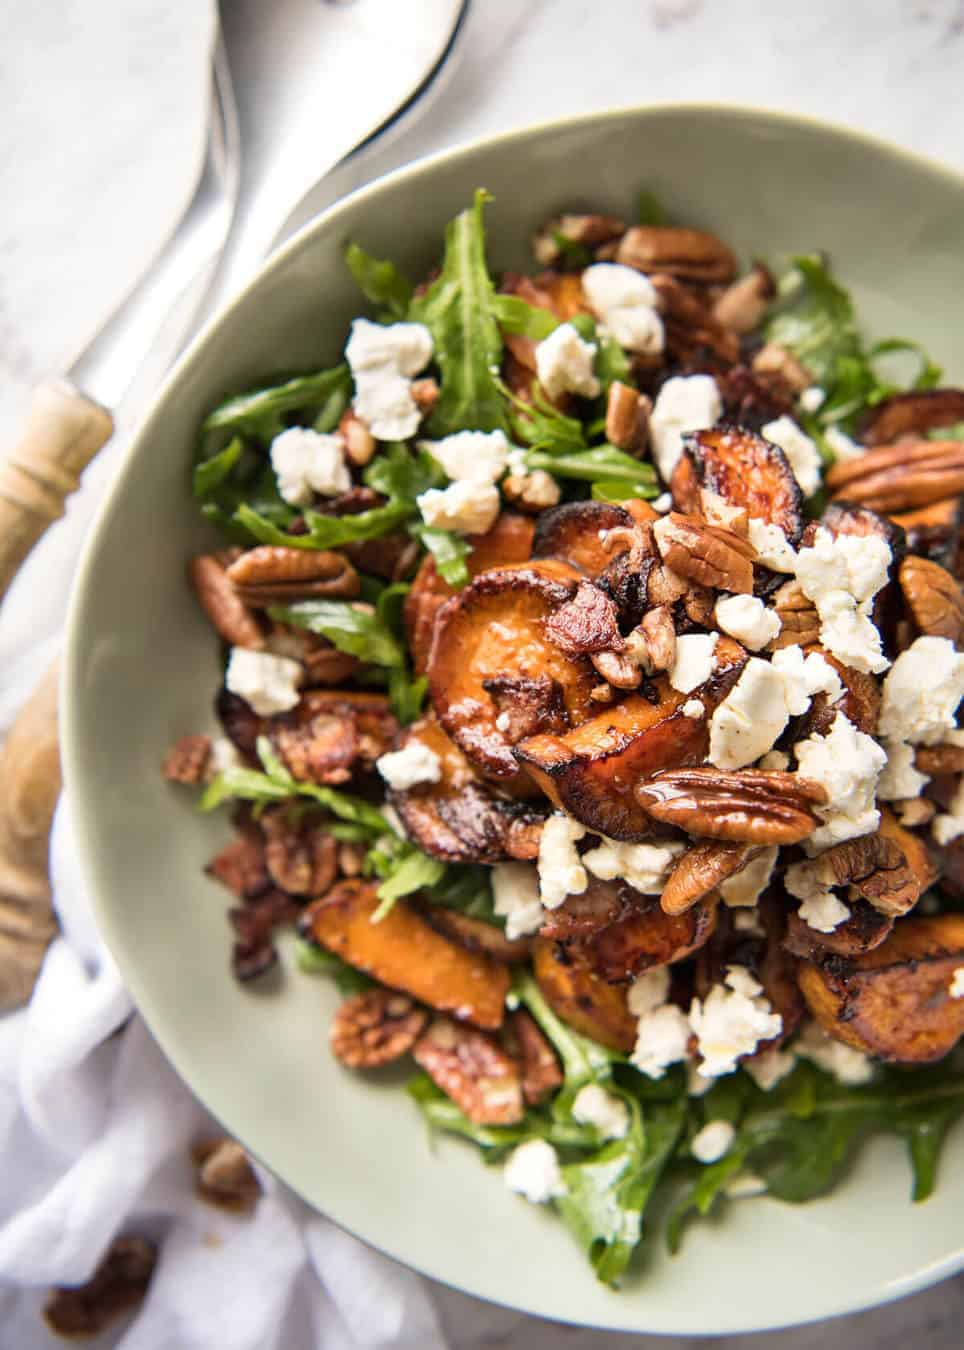 Roasted Sweet Potato Salad With Honey Lemon Dressing Recipetin Eats